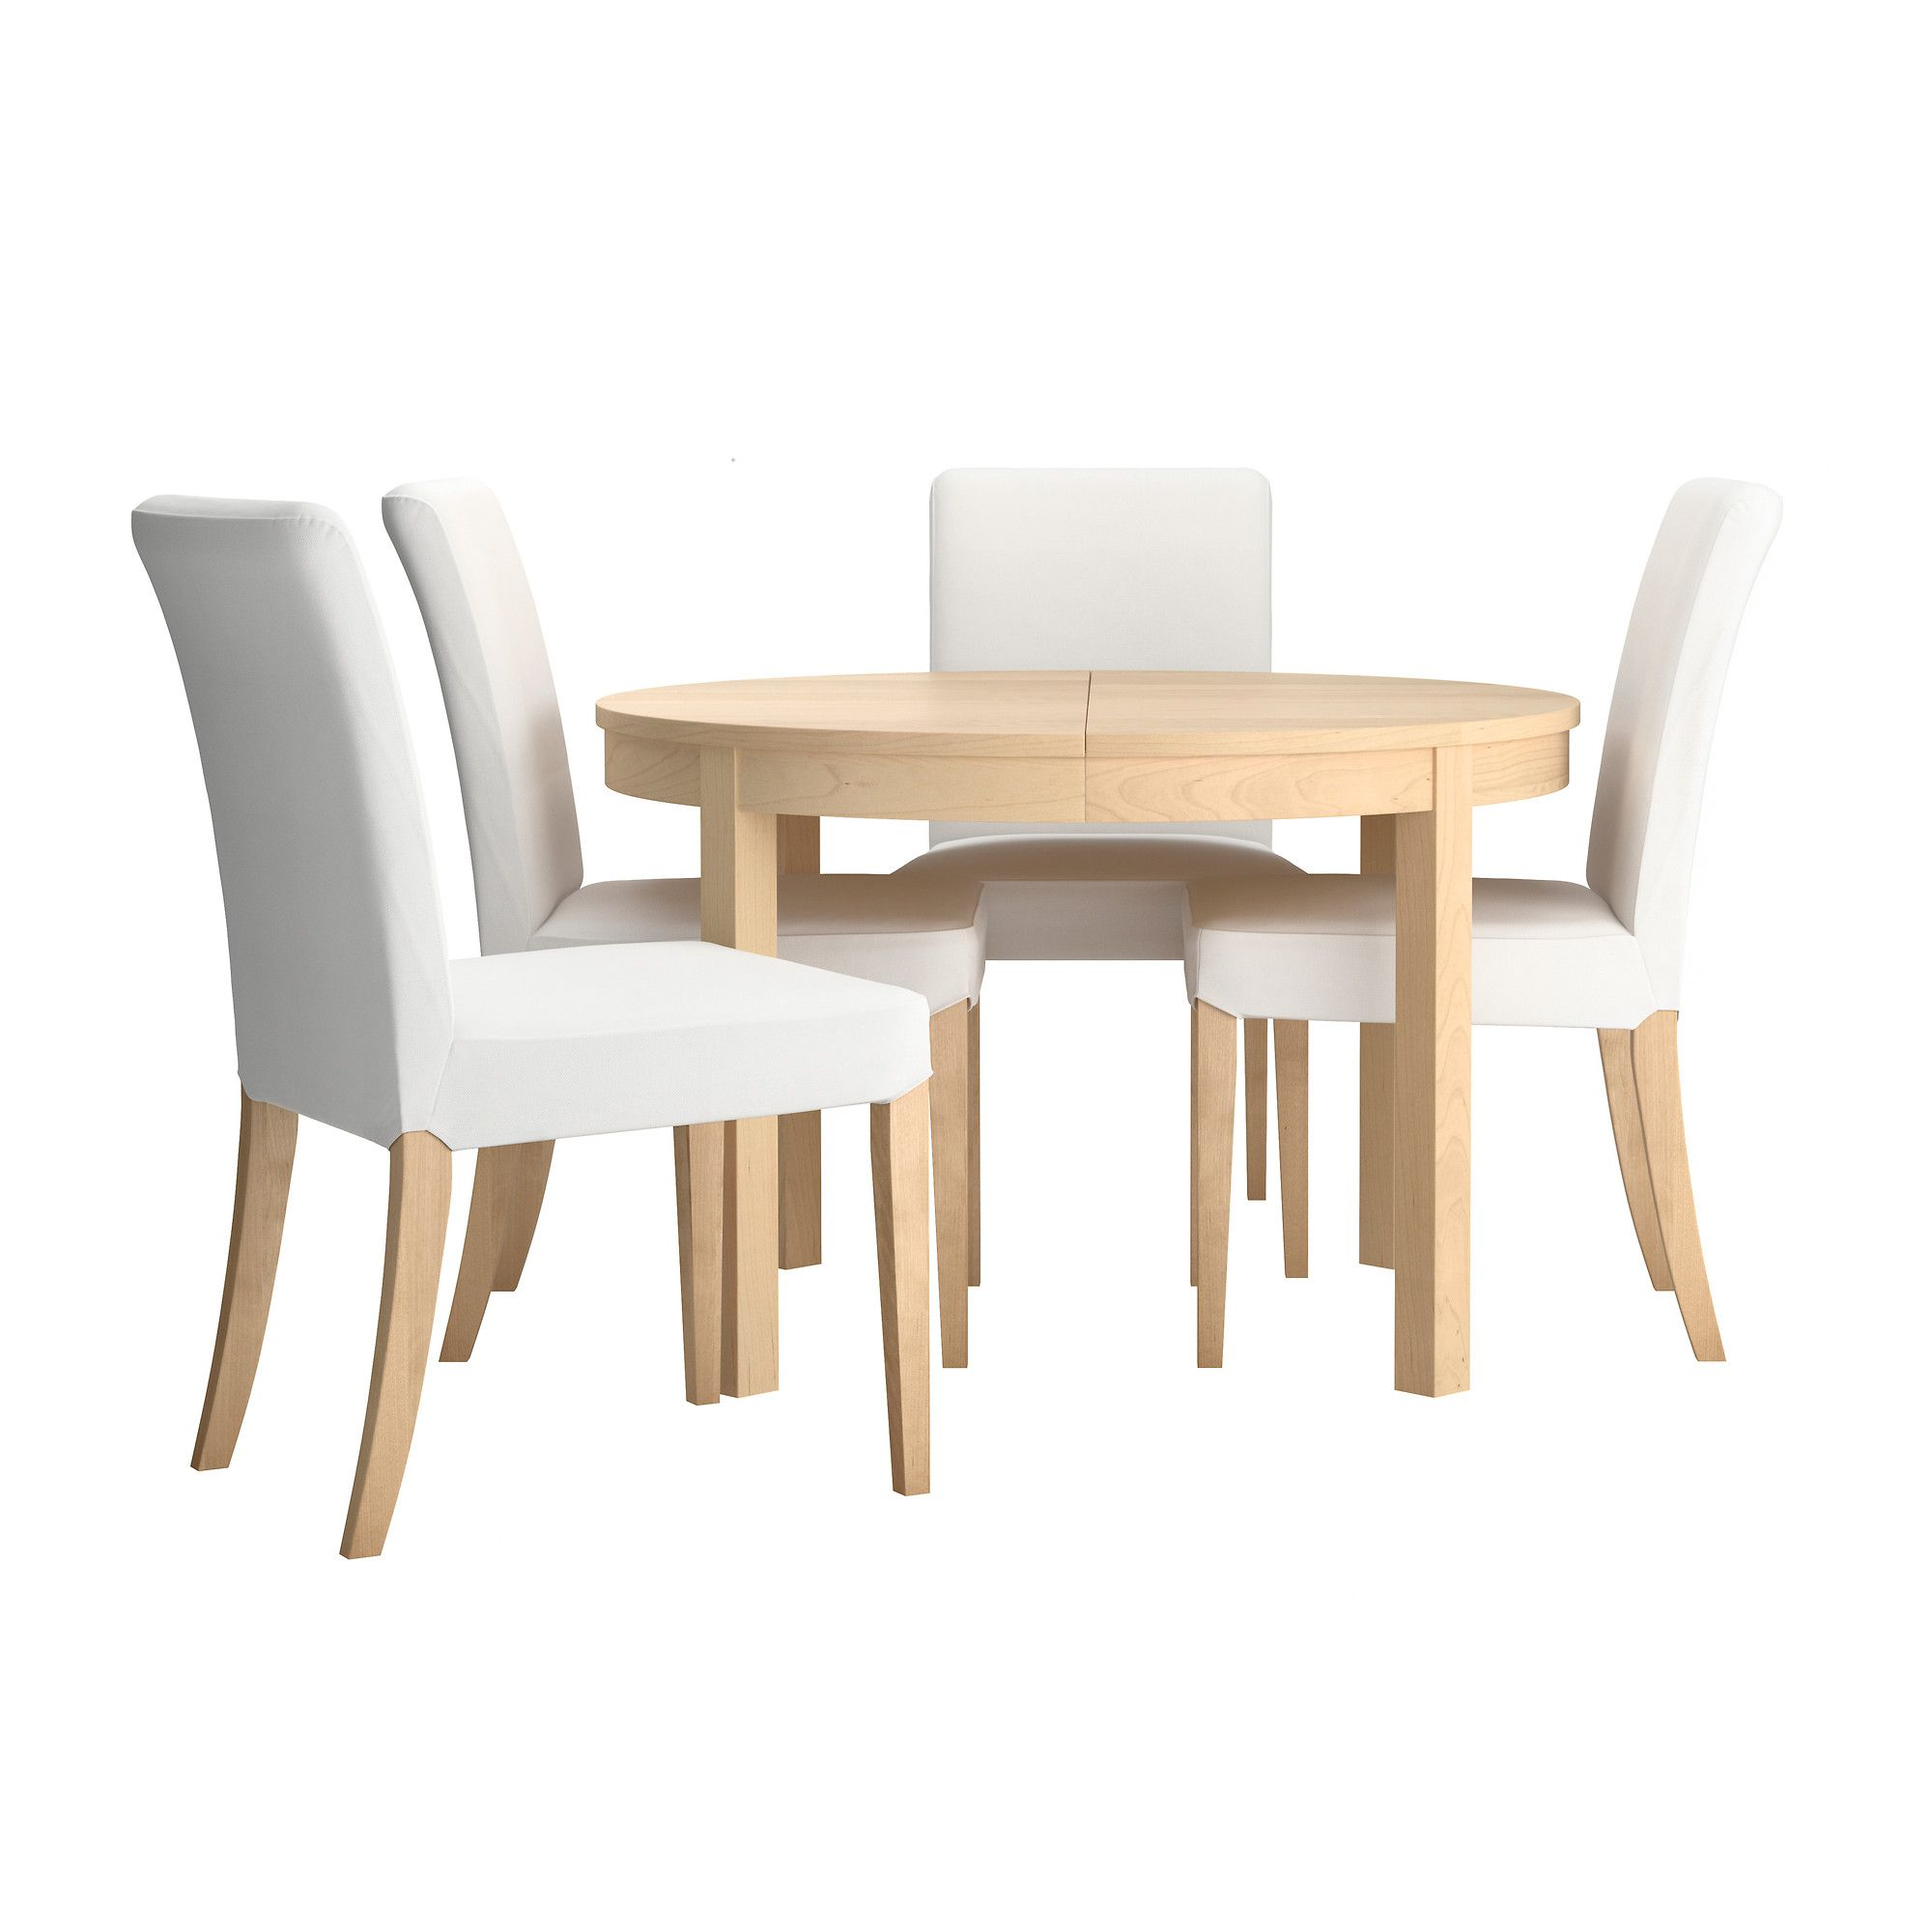 Dining Room Furniture Sets Ikea: US - Furniture And Home Furnishings